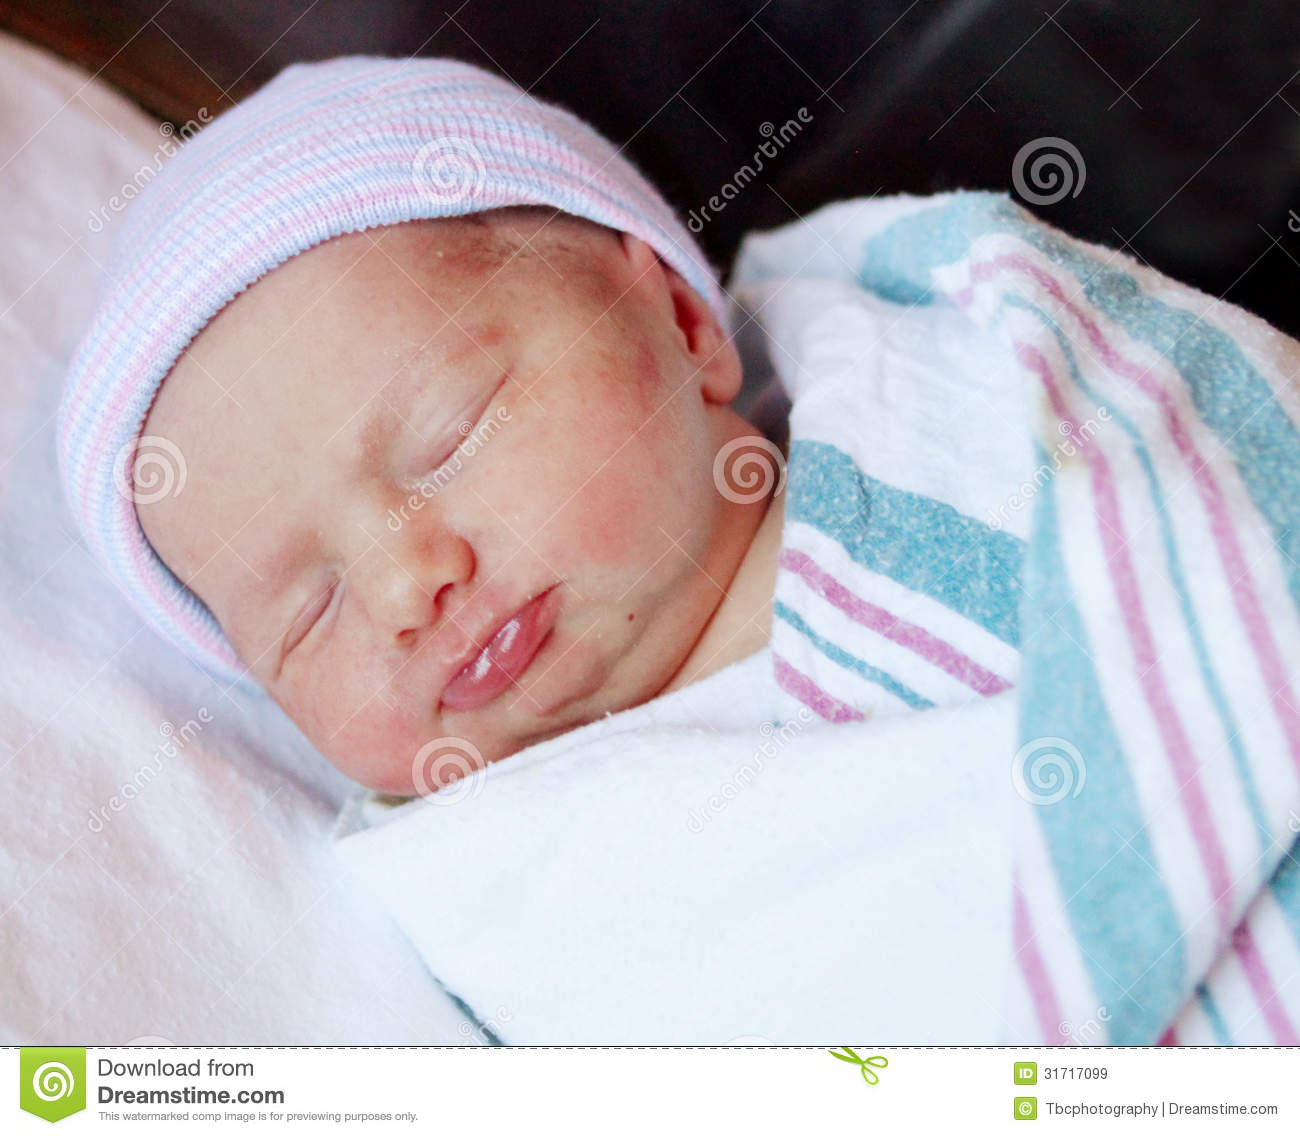 Newborn Baby Wrapped Up In A Blanket Stock Image Image Of Sleep